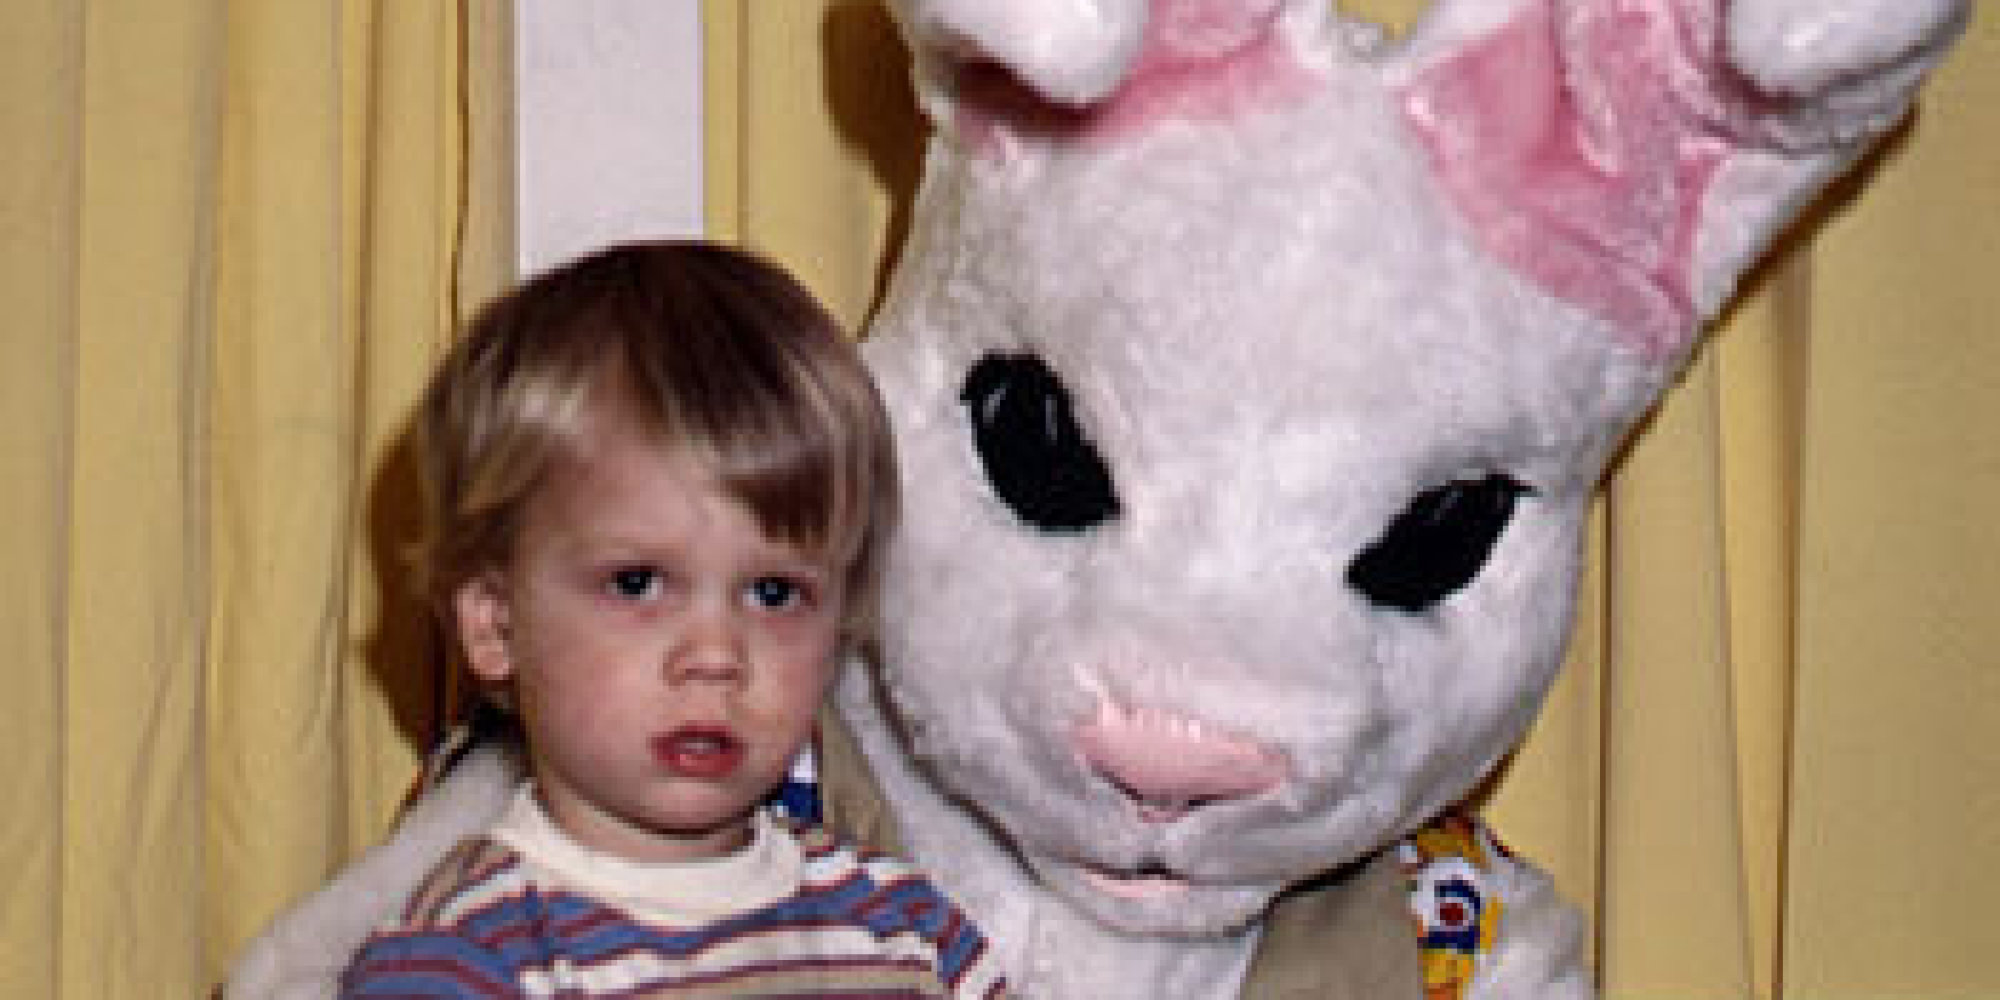 Scary Easter Bunny Photos O-creepy-easter-bunnies- ...